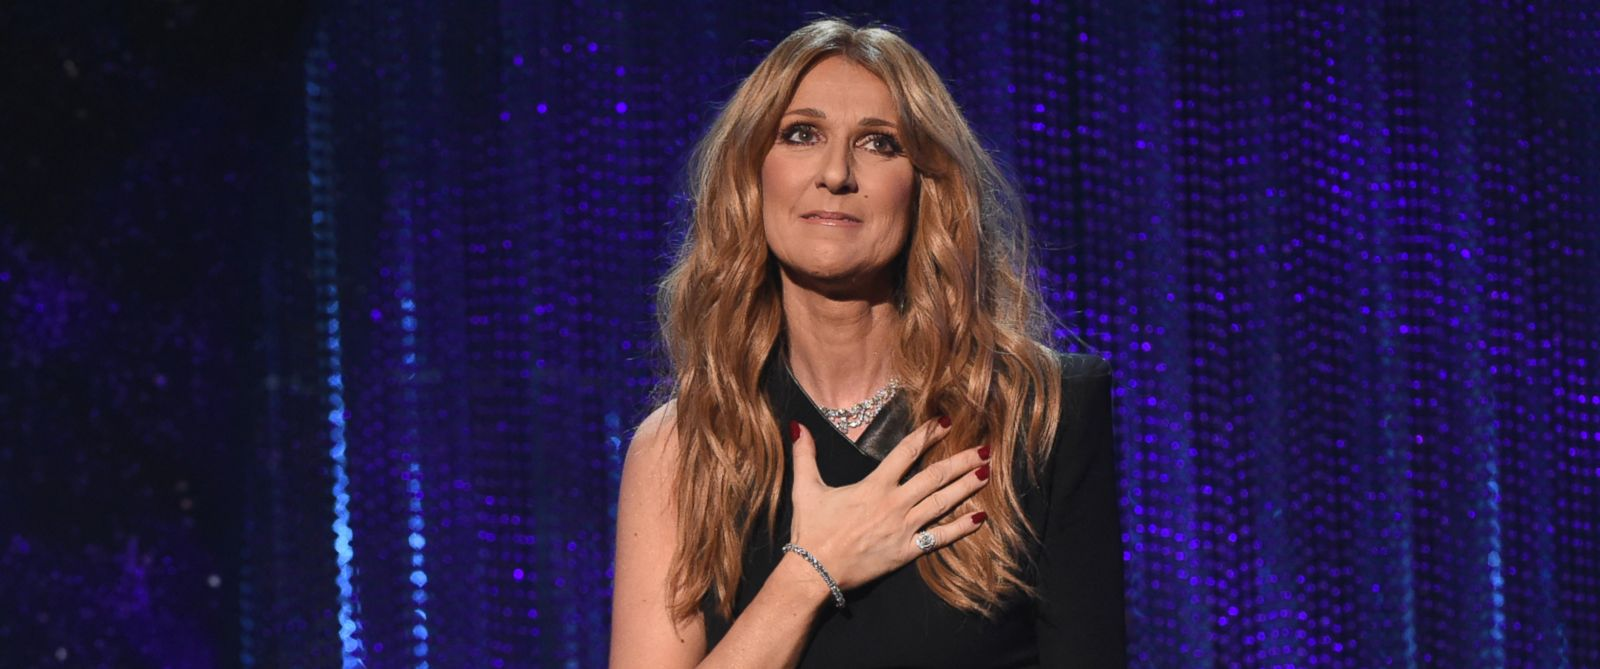 PHOTO: Celine Dion performs in Las Vegas, Dec. 6, 2015.